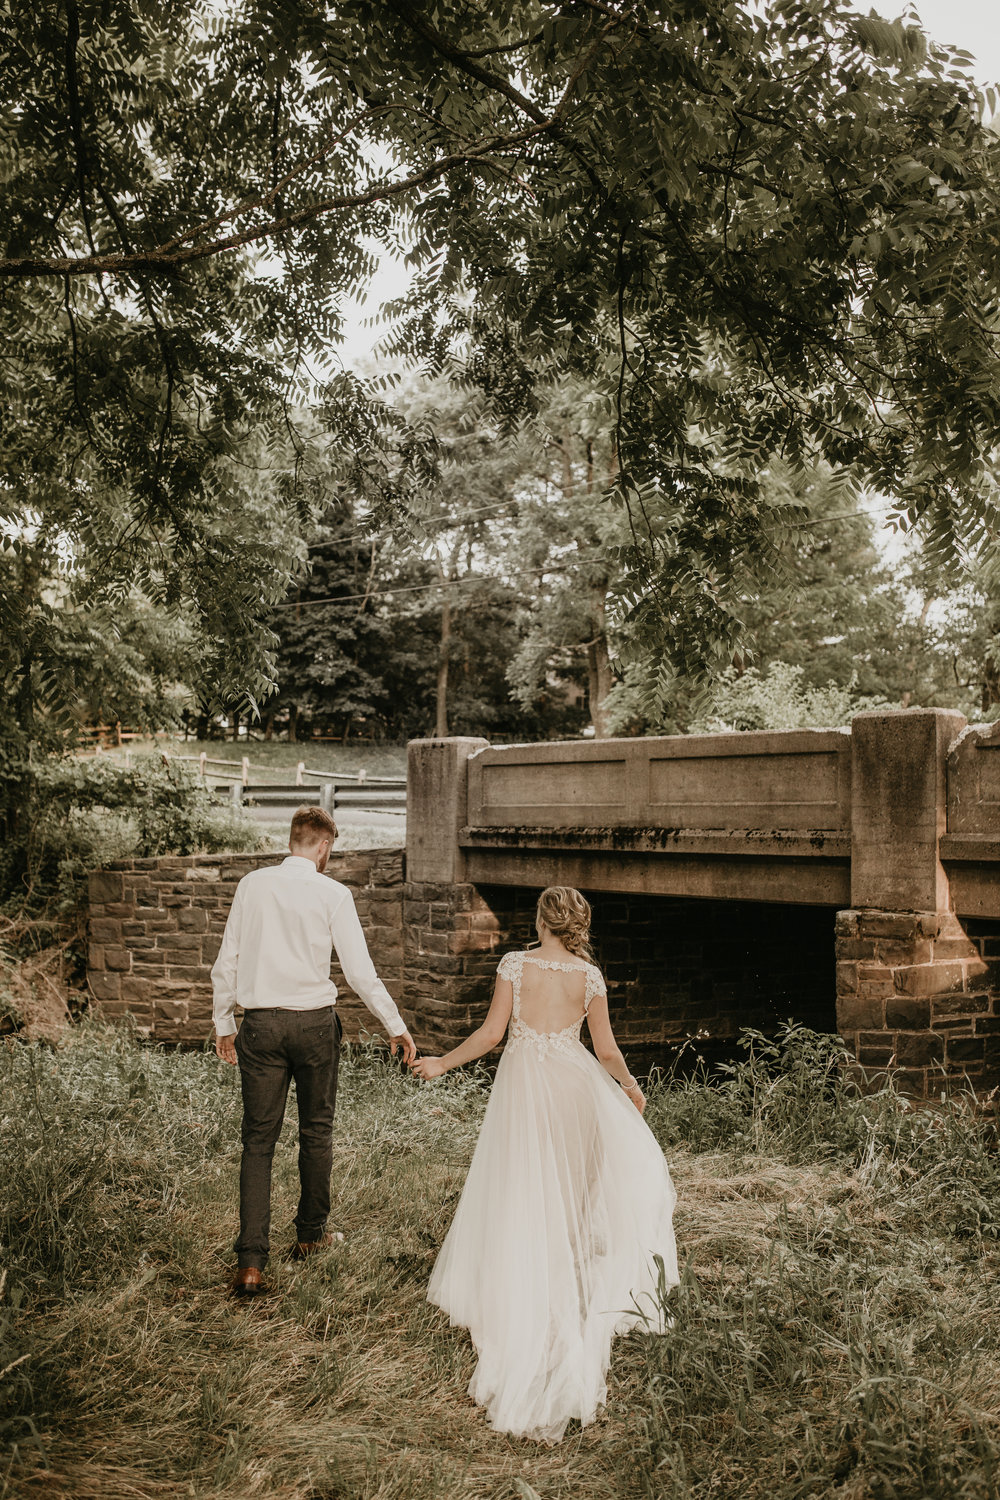 Nicole-Daacke-Photography-pennsylvania-laid-back-outside-backyard-wedding-family-summer-june-maryland-barefoot-bride-woodland-trees-sunset-couple-83.jpg